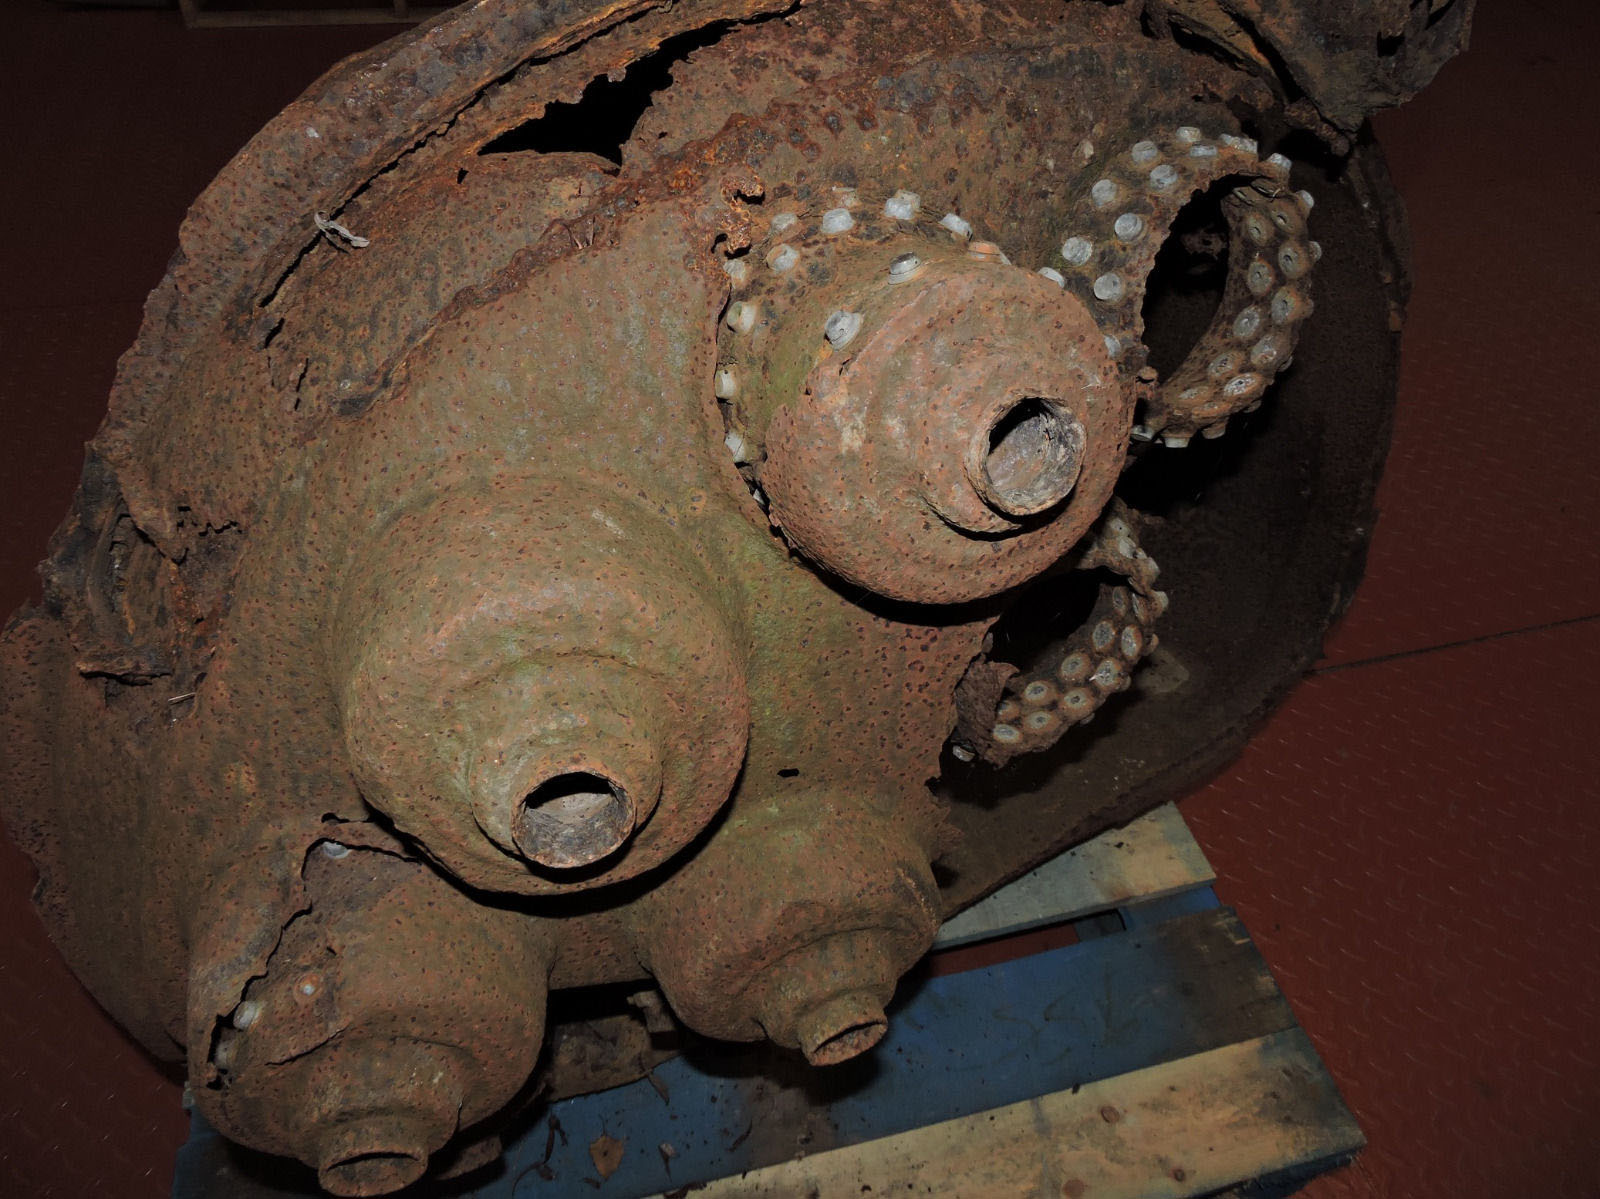 V2 injector head from 1945